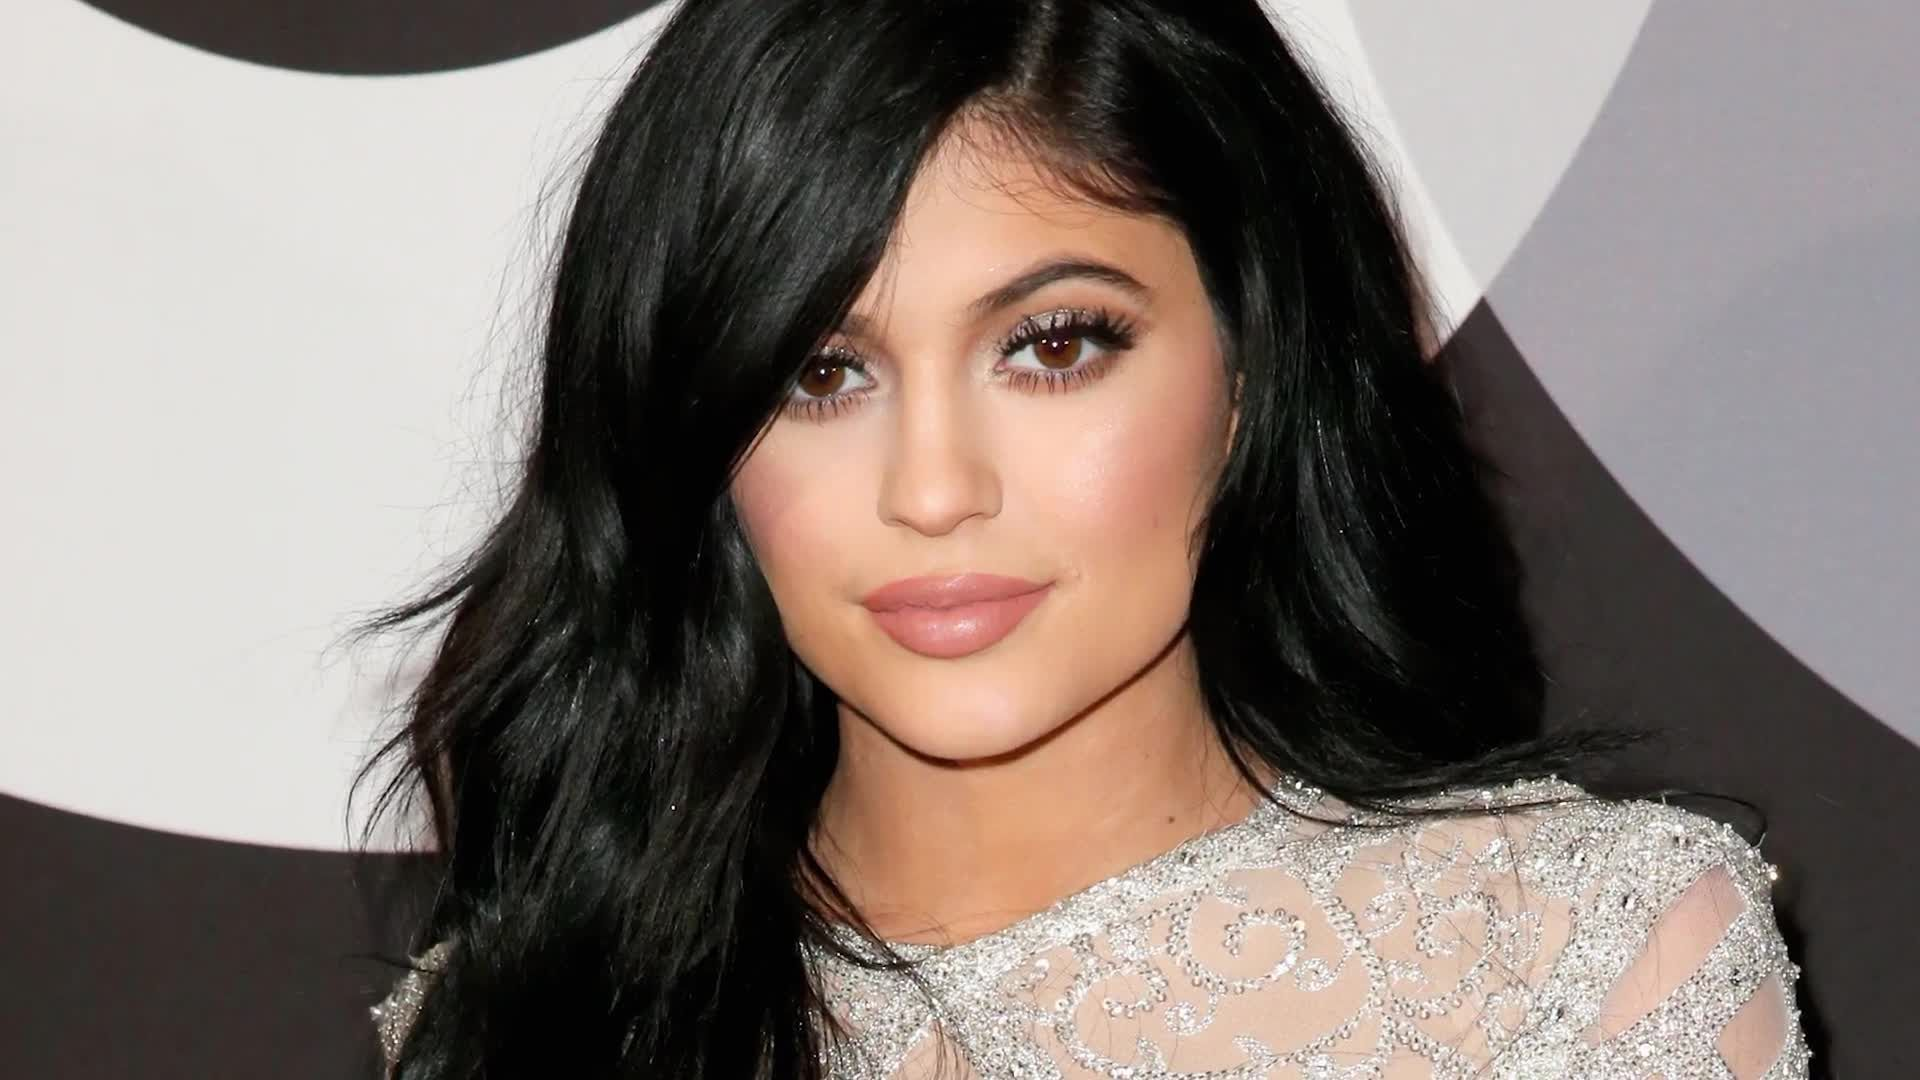 The Many Hair Colors of Kylie Jenner